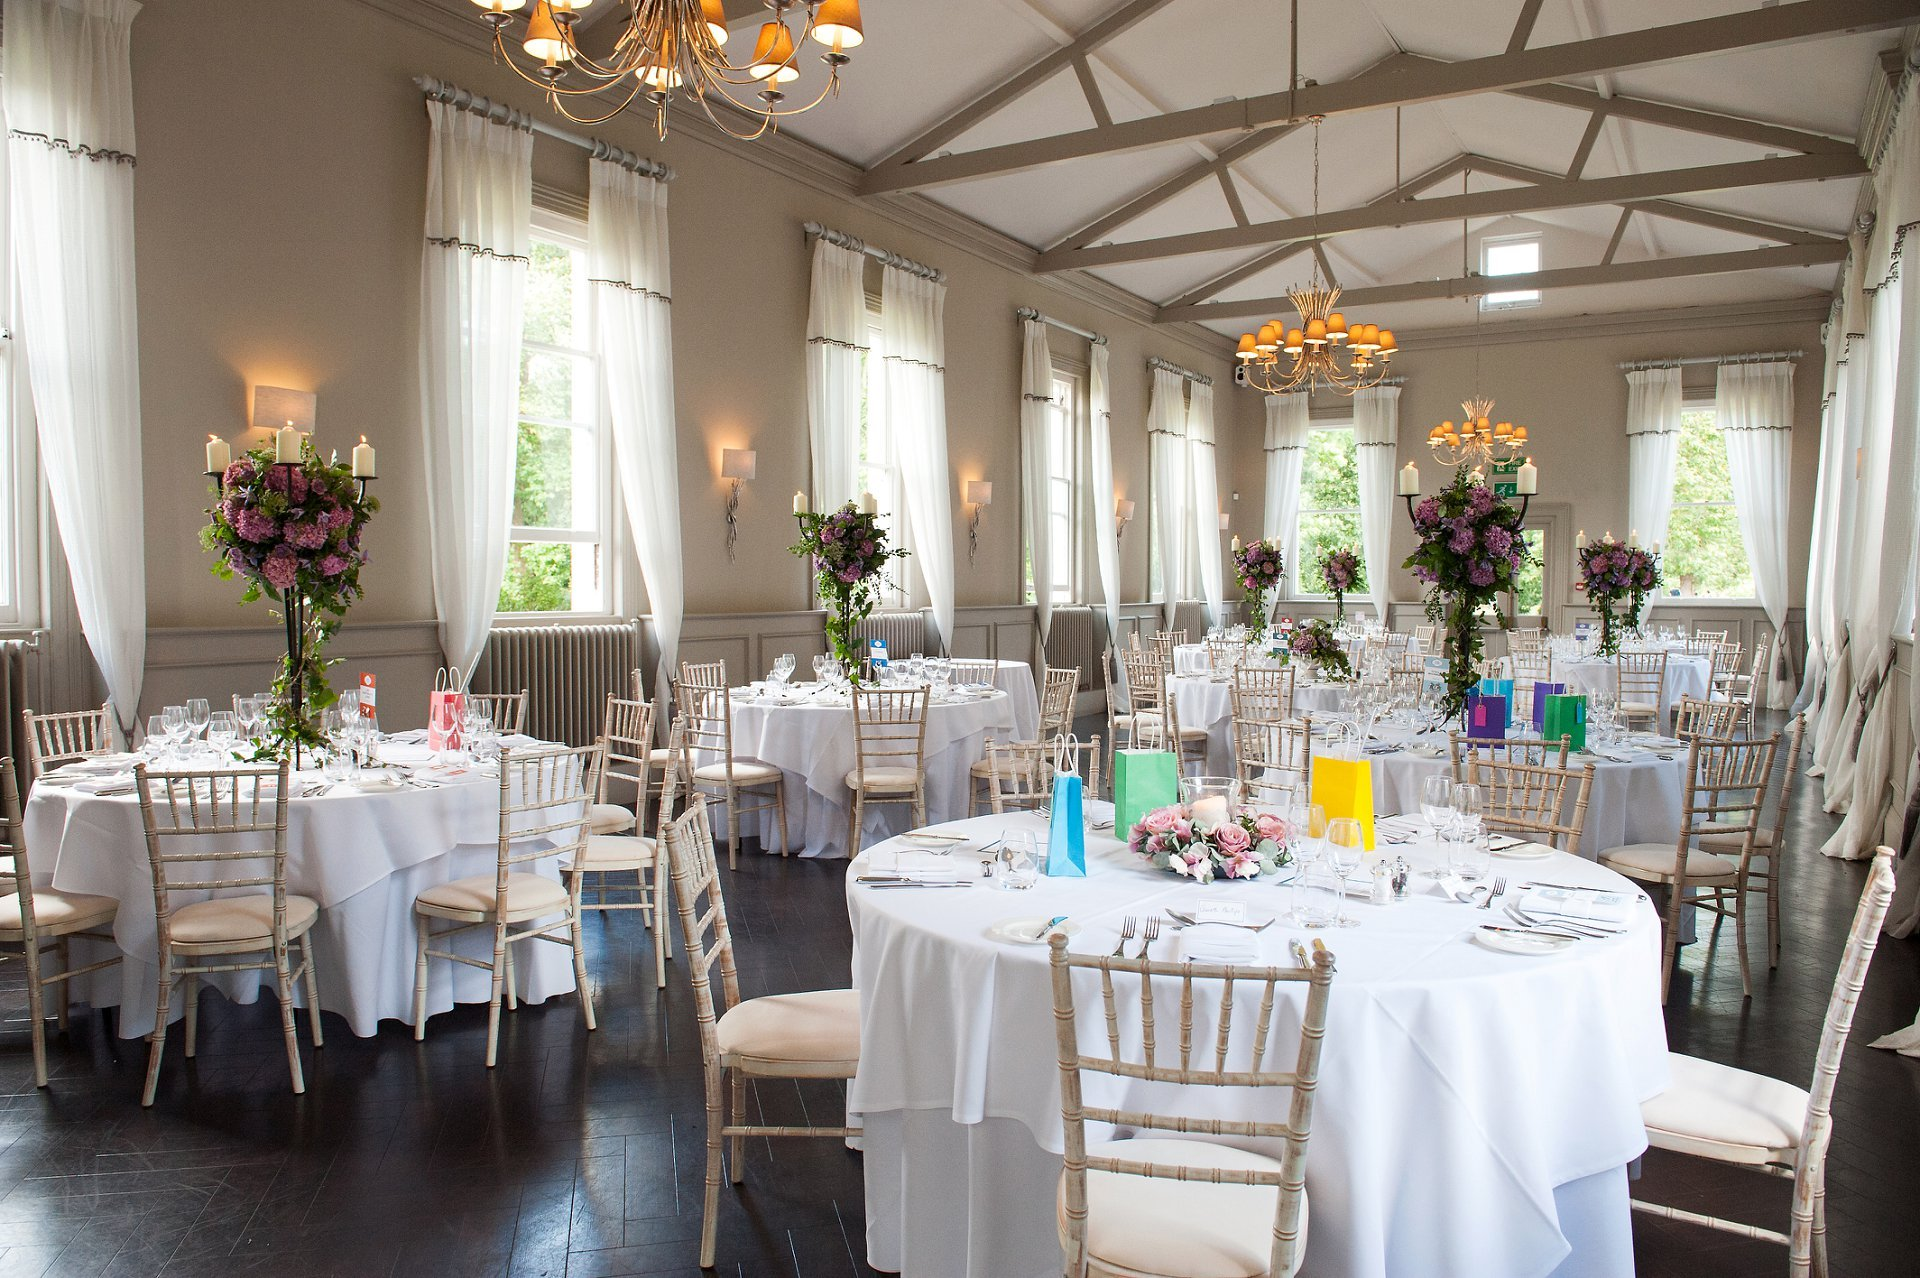 Mulberry Room at Morden Hall set up for a wedding breakfast